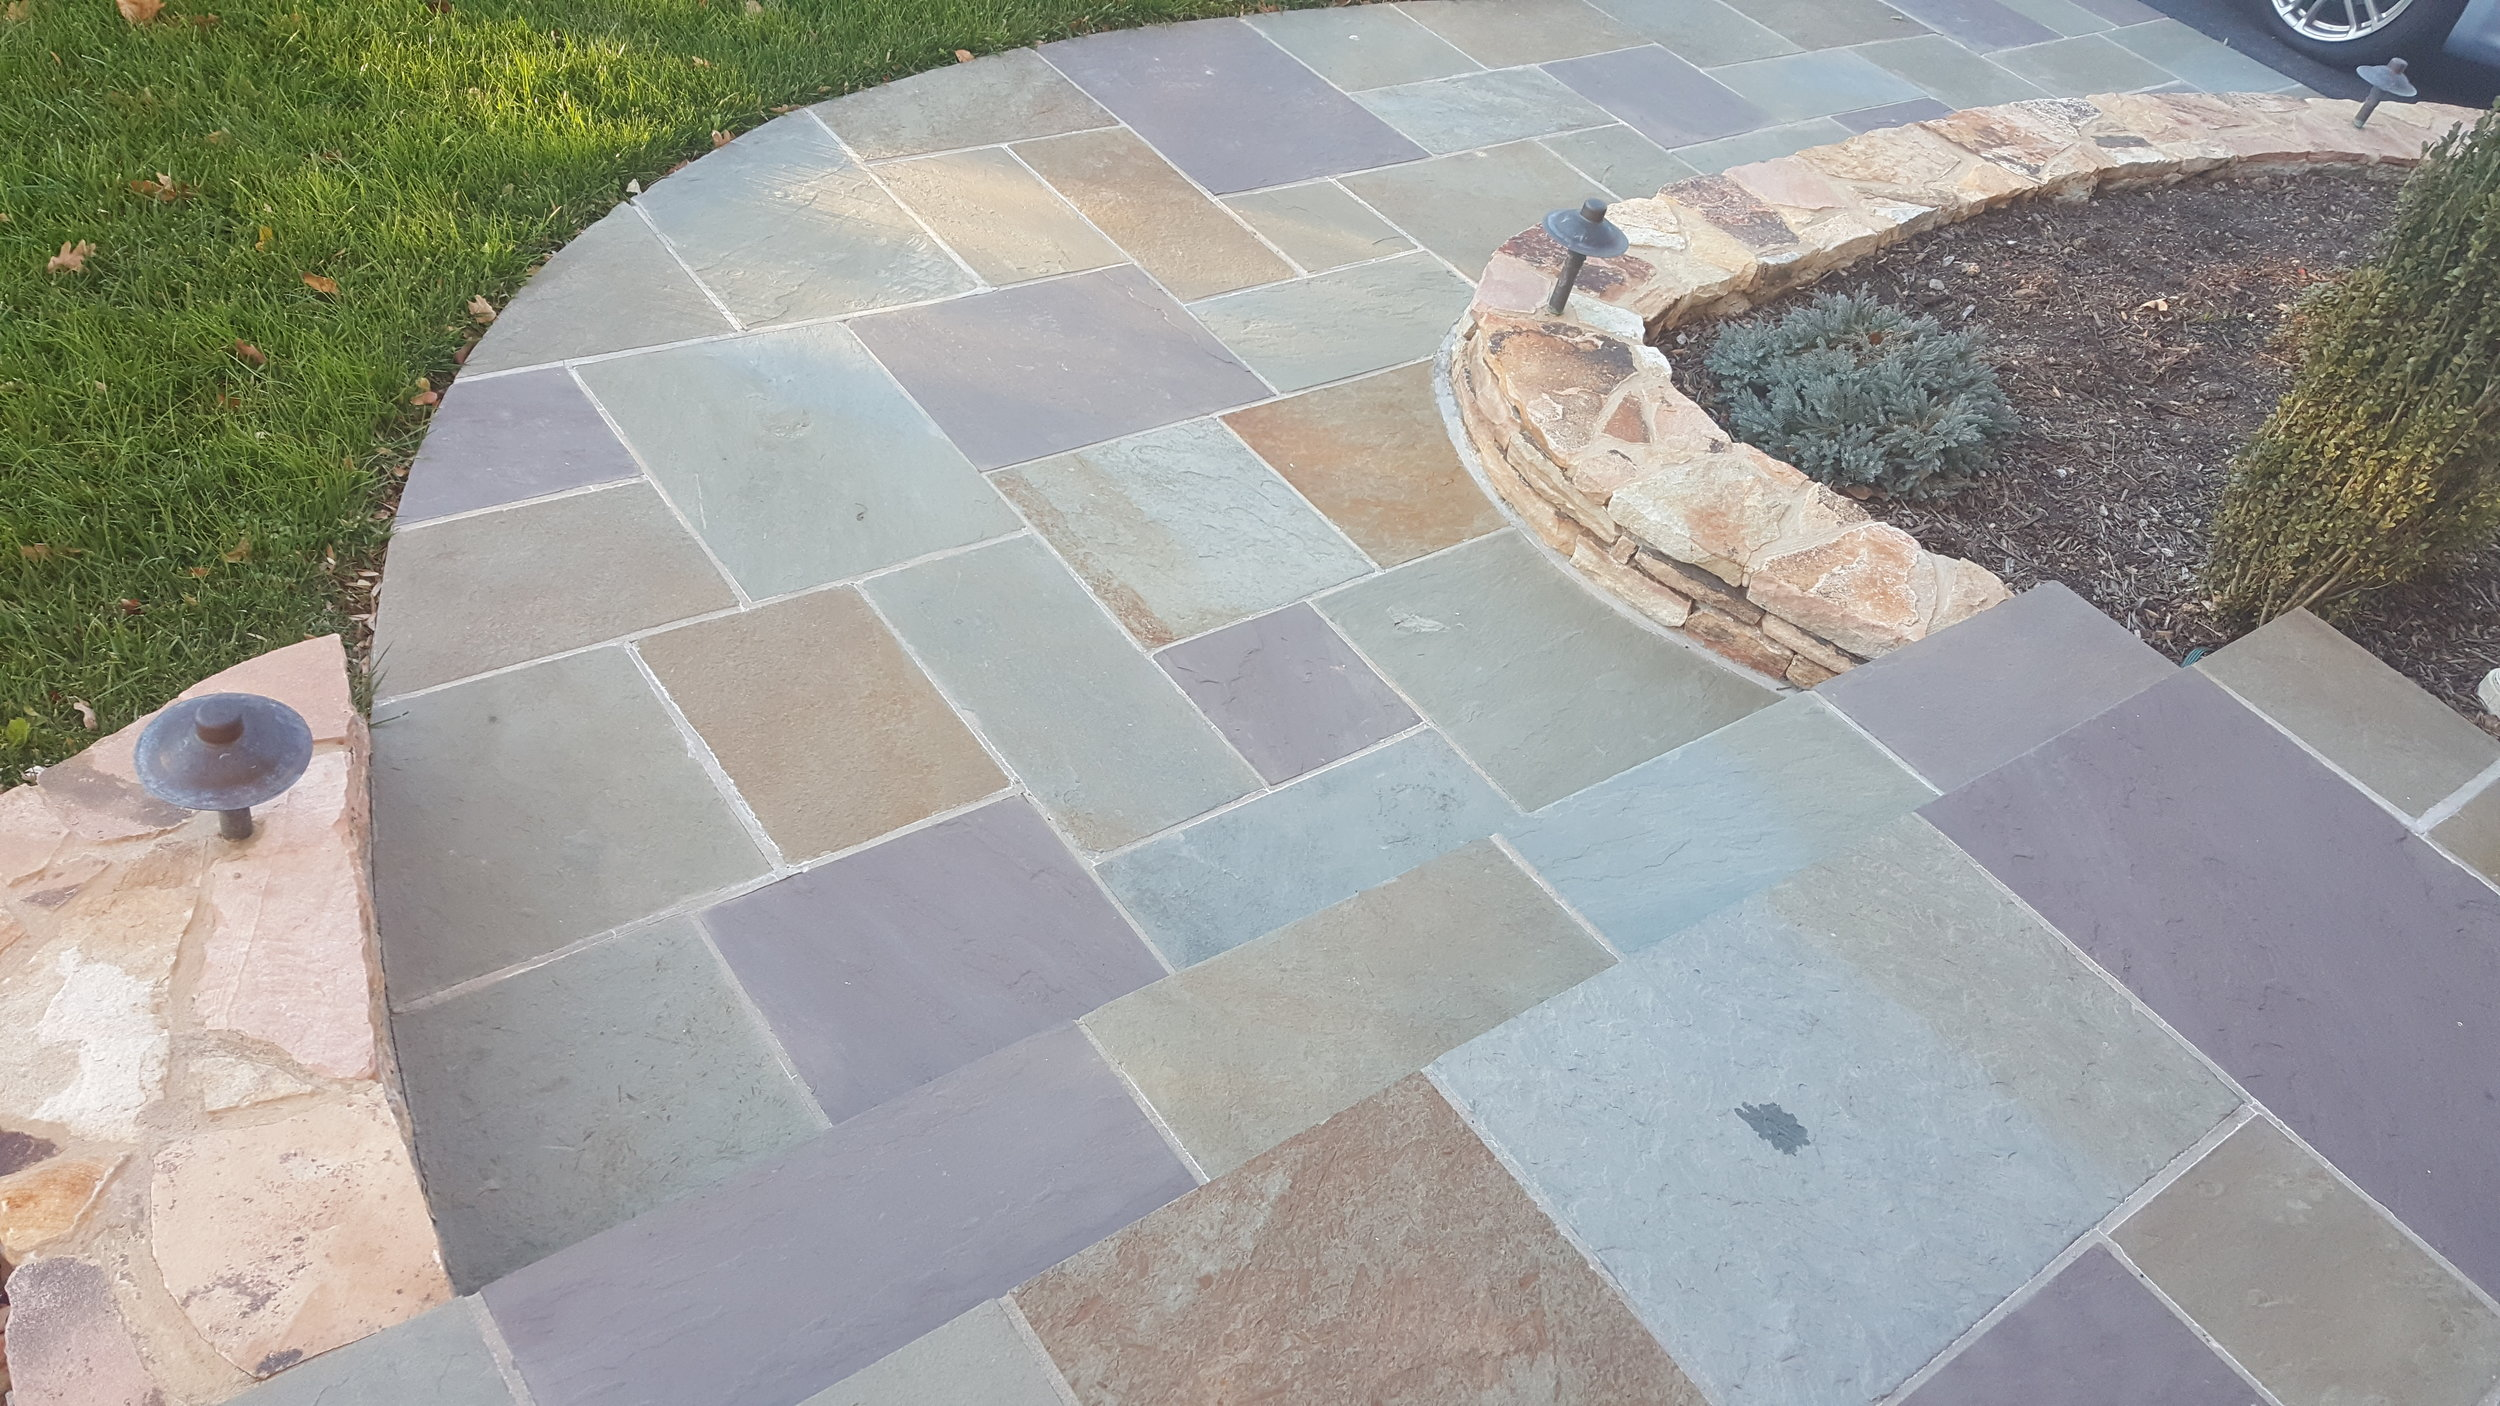 Flagstone-Walkway-Multicored, Curving.jpg